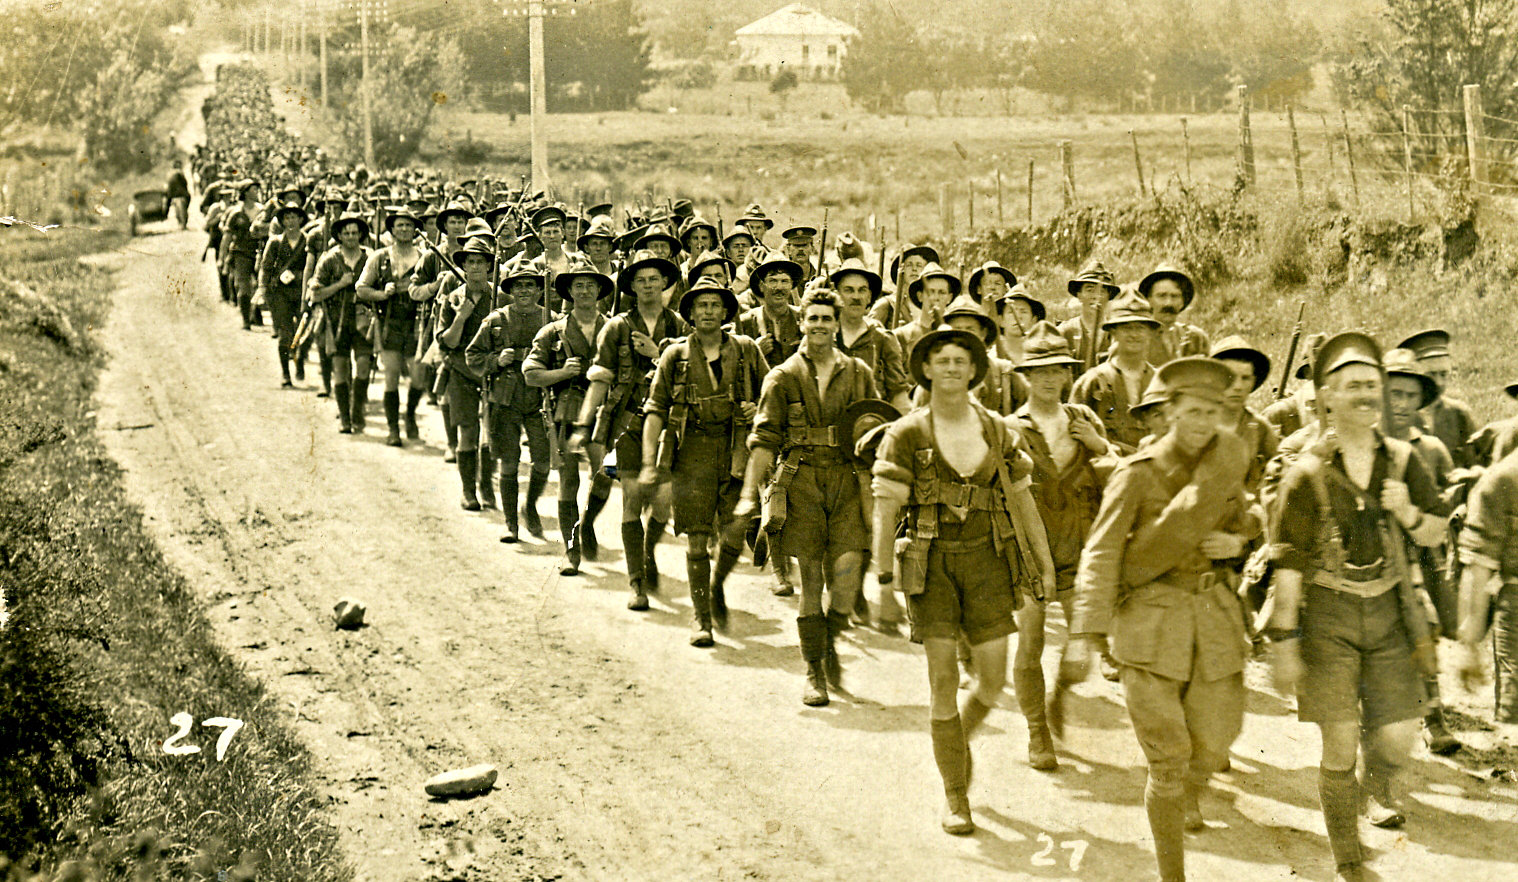 The New Zealand Division marching from Trentham to embark for Europe. Photo taken in Hutt Valley, Wellington, New Zealand, on April 14, 1916.